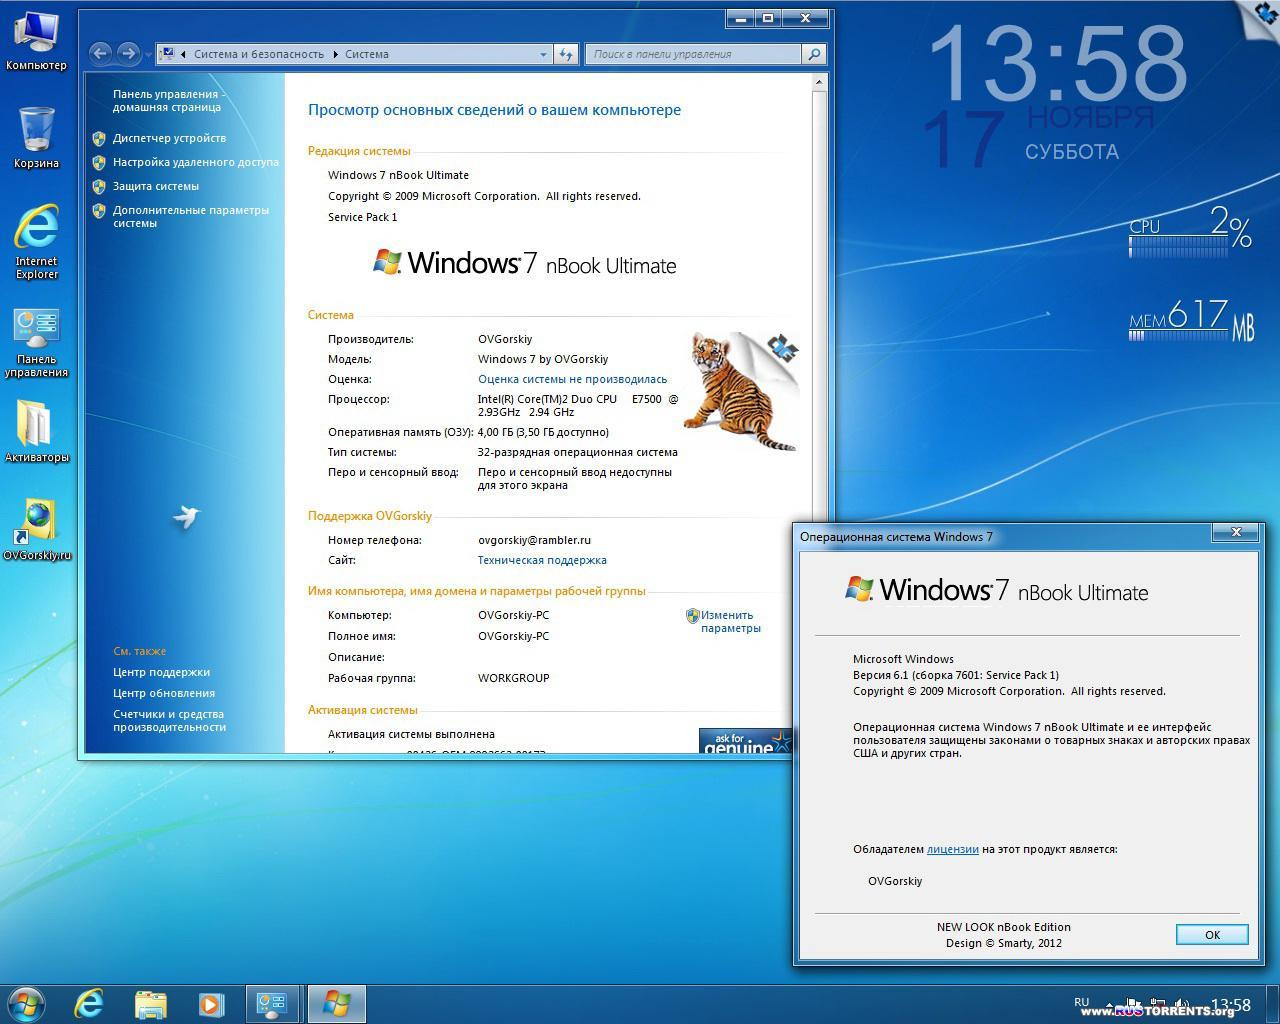 Windows 7 Ultimate nBook ie10 x86-x64 Ru by OVGorskiy 11.2012 [Русский]